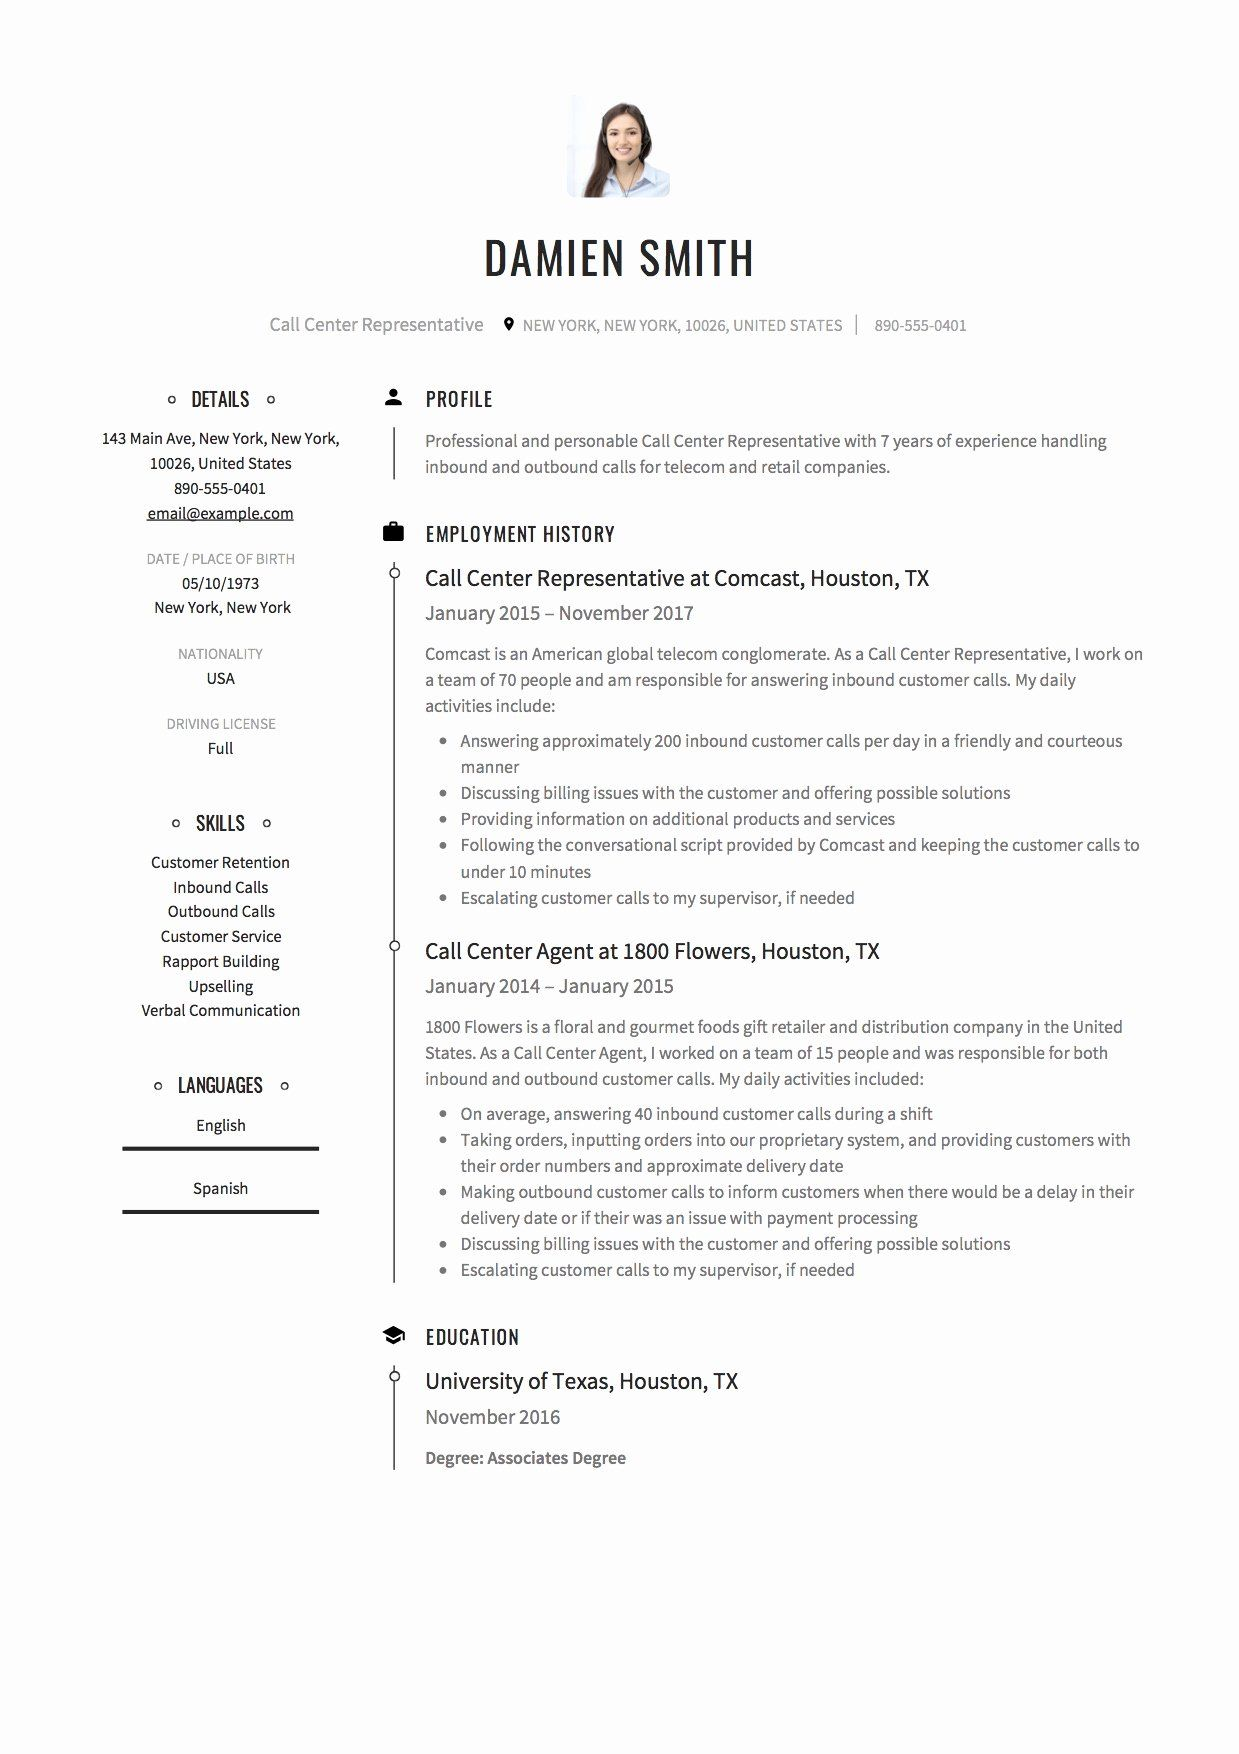 25 Call Center Representative Resume in 2020 (With images